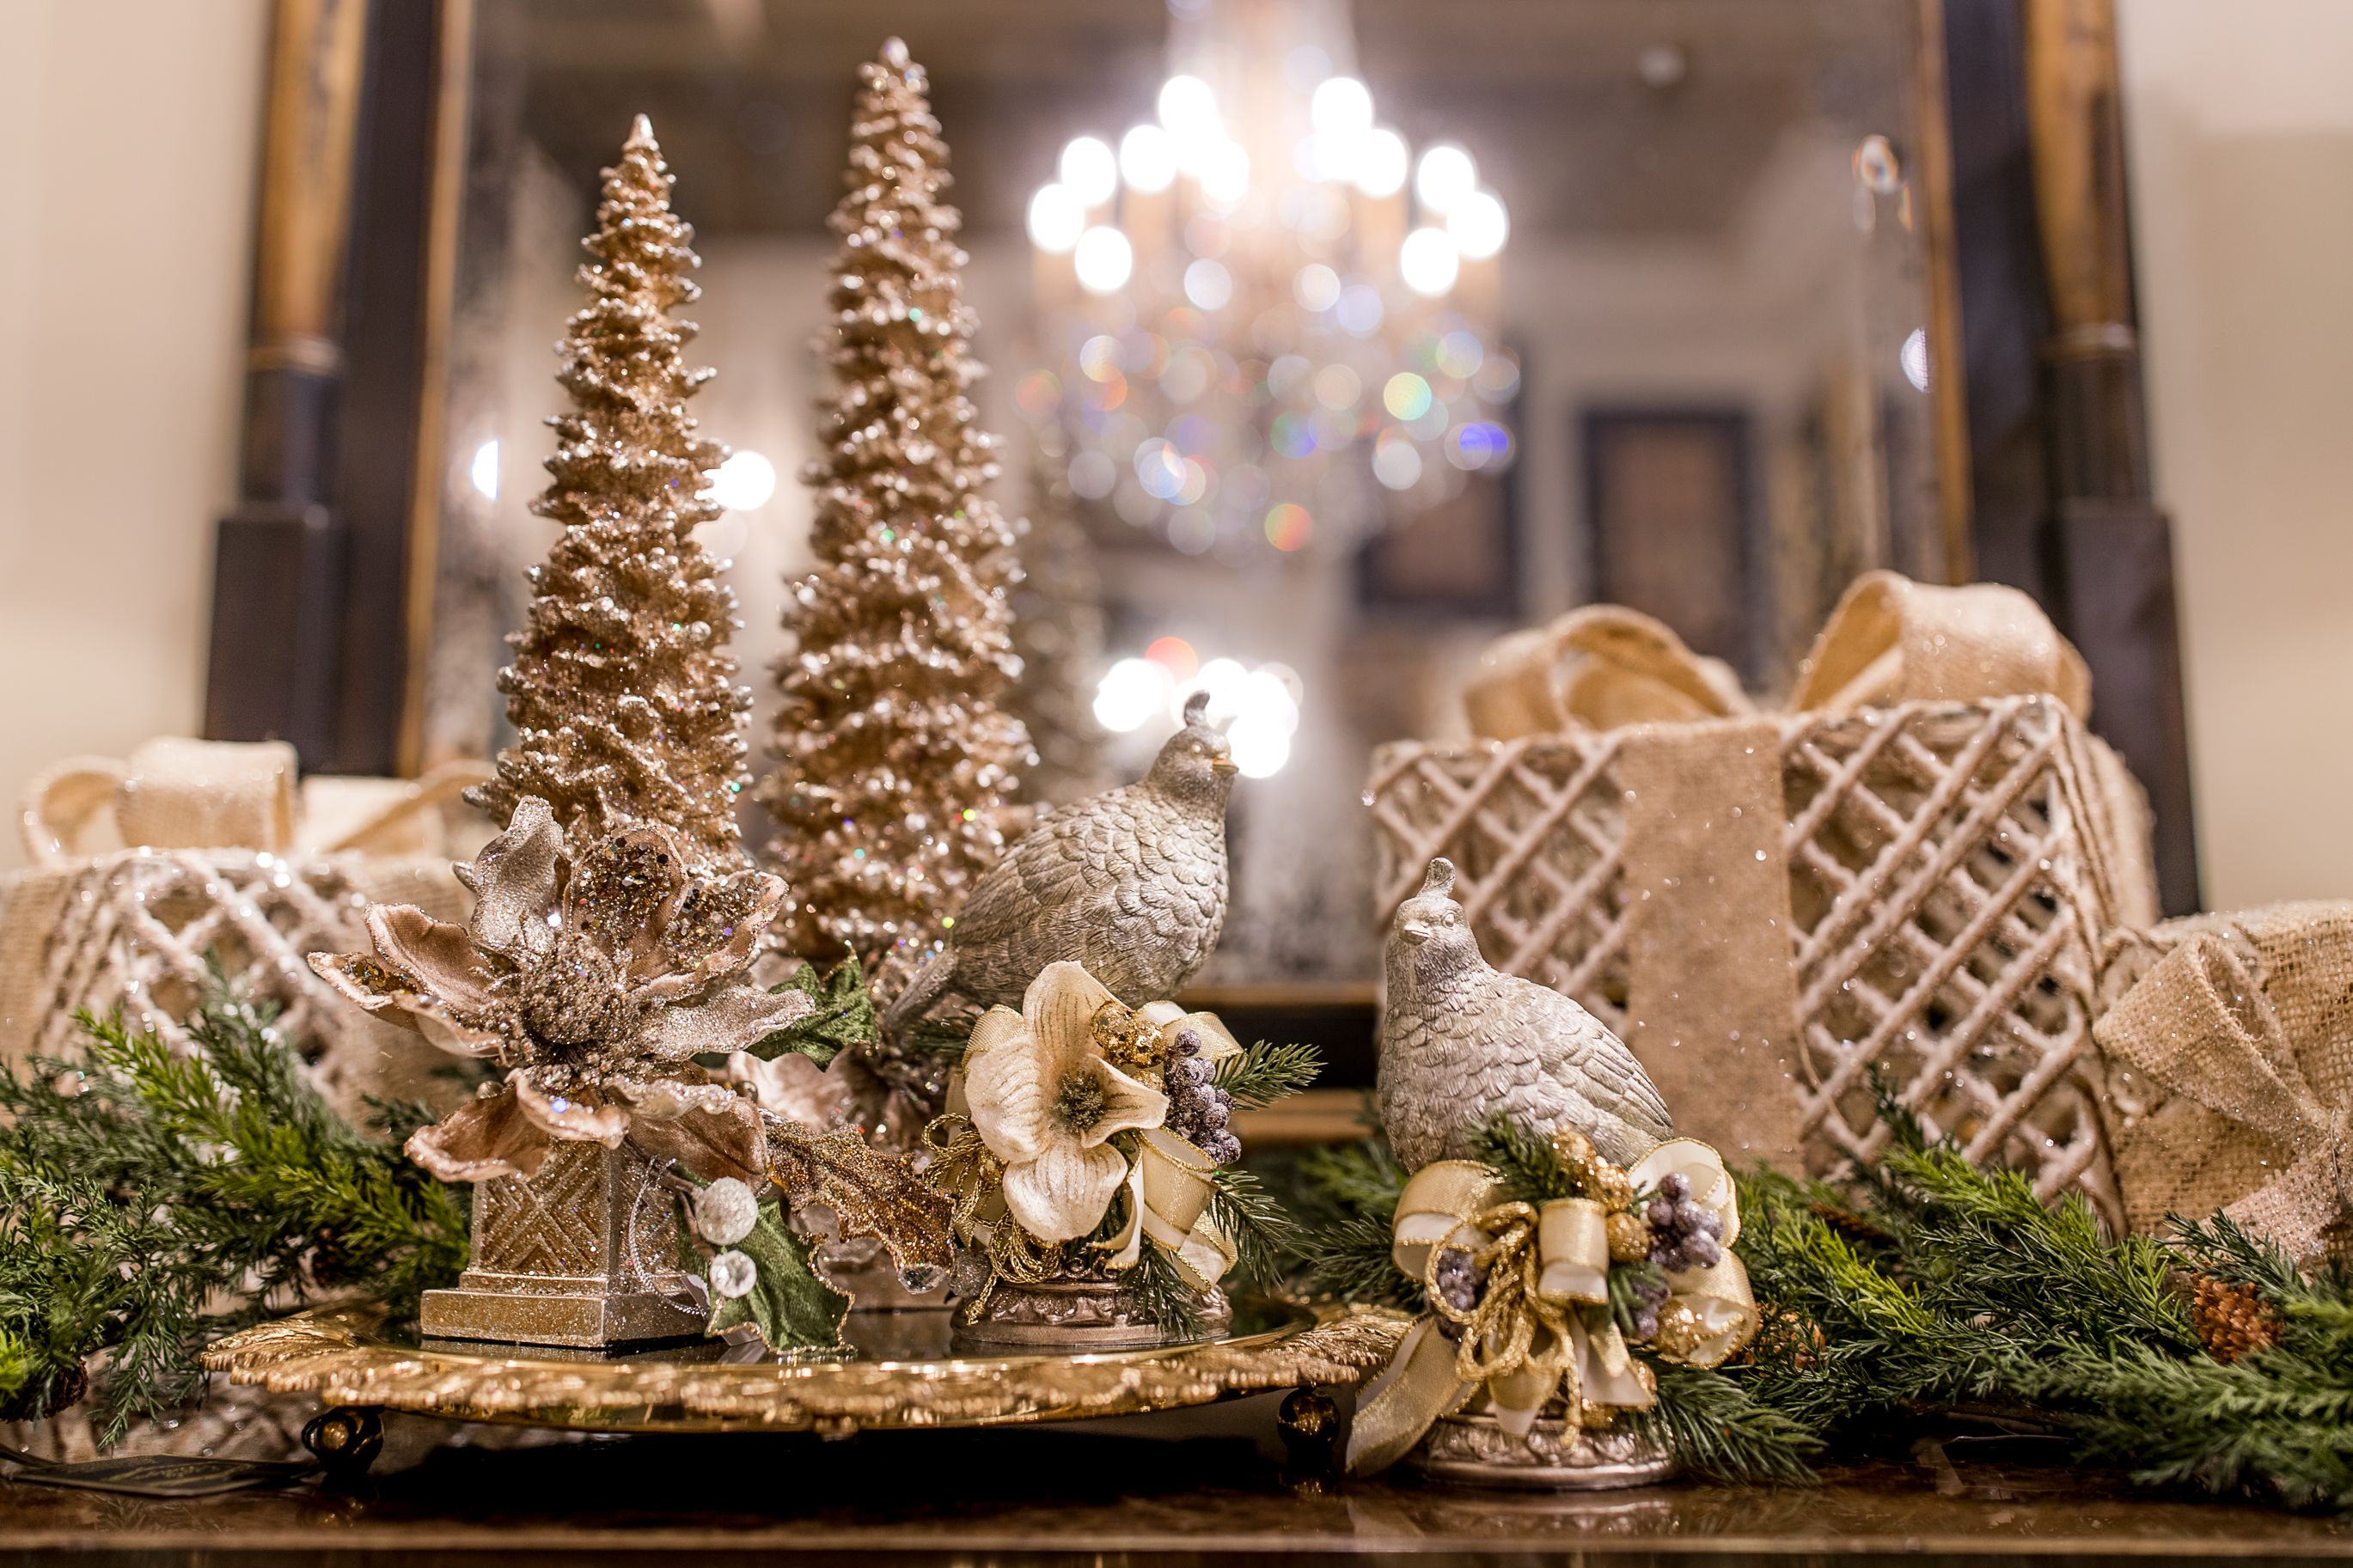 Christmas Sneak Peek From The Linly Workshop Christmas Holiday Decor Christmas Celebrations